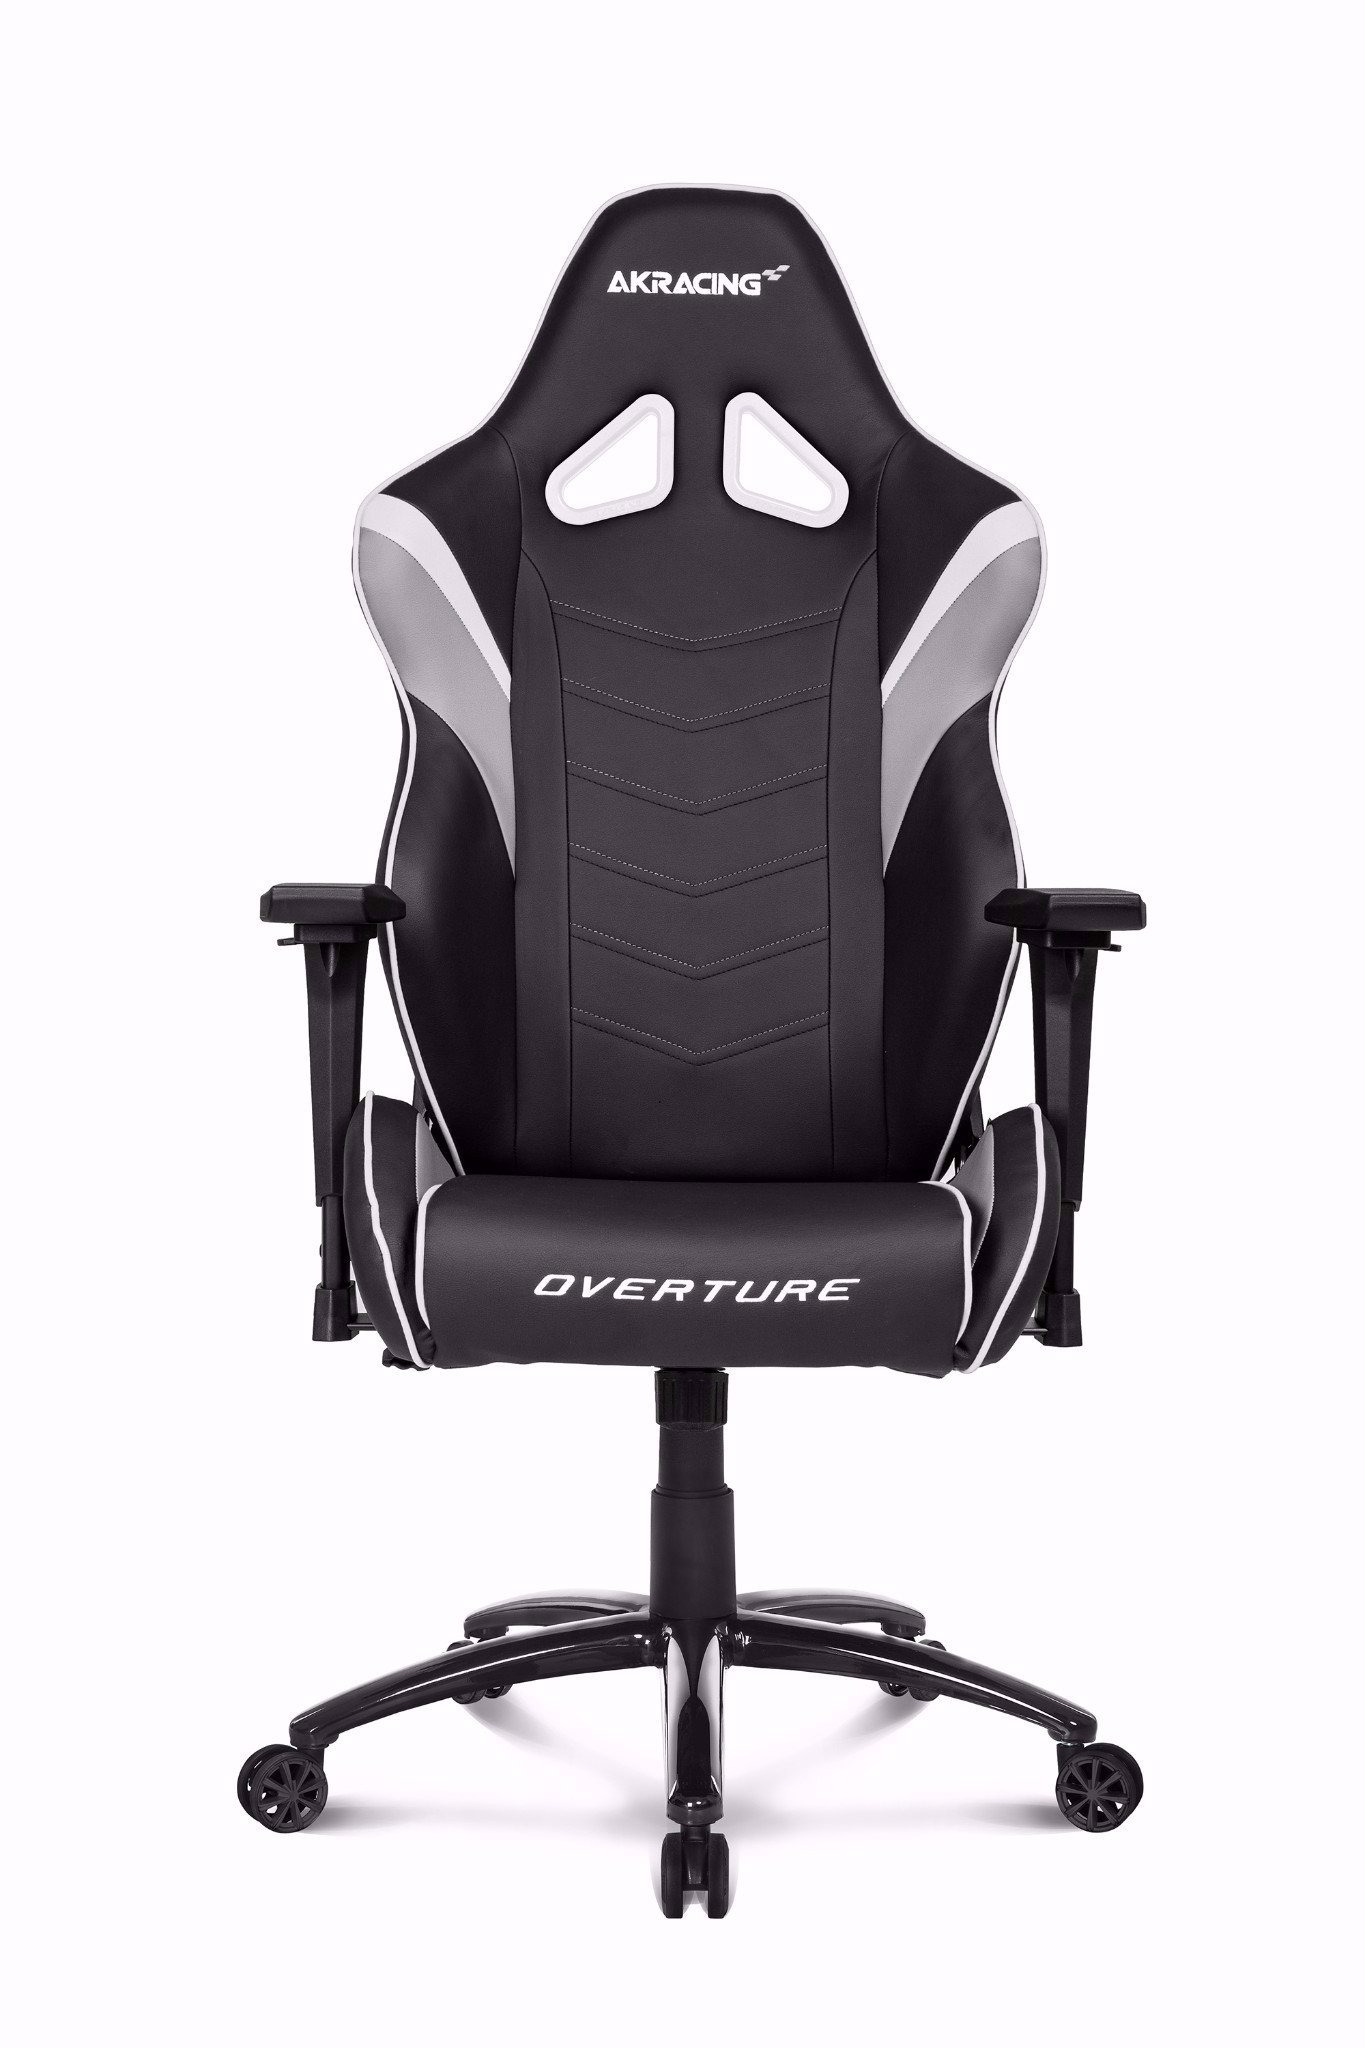 ghe gamer akracing overture k601o white